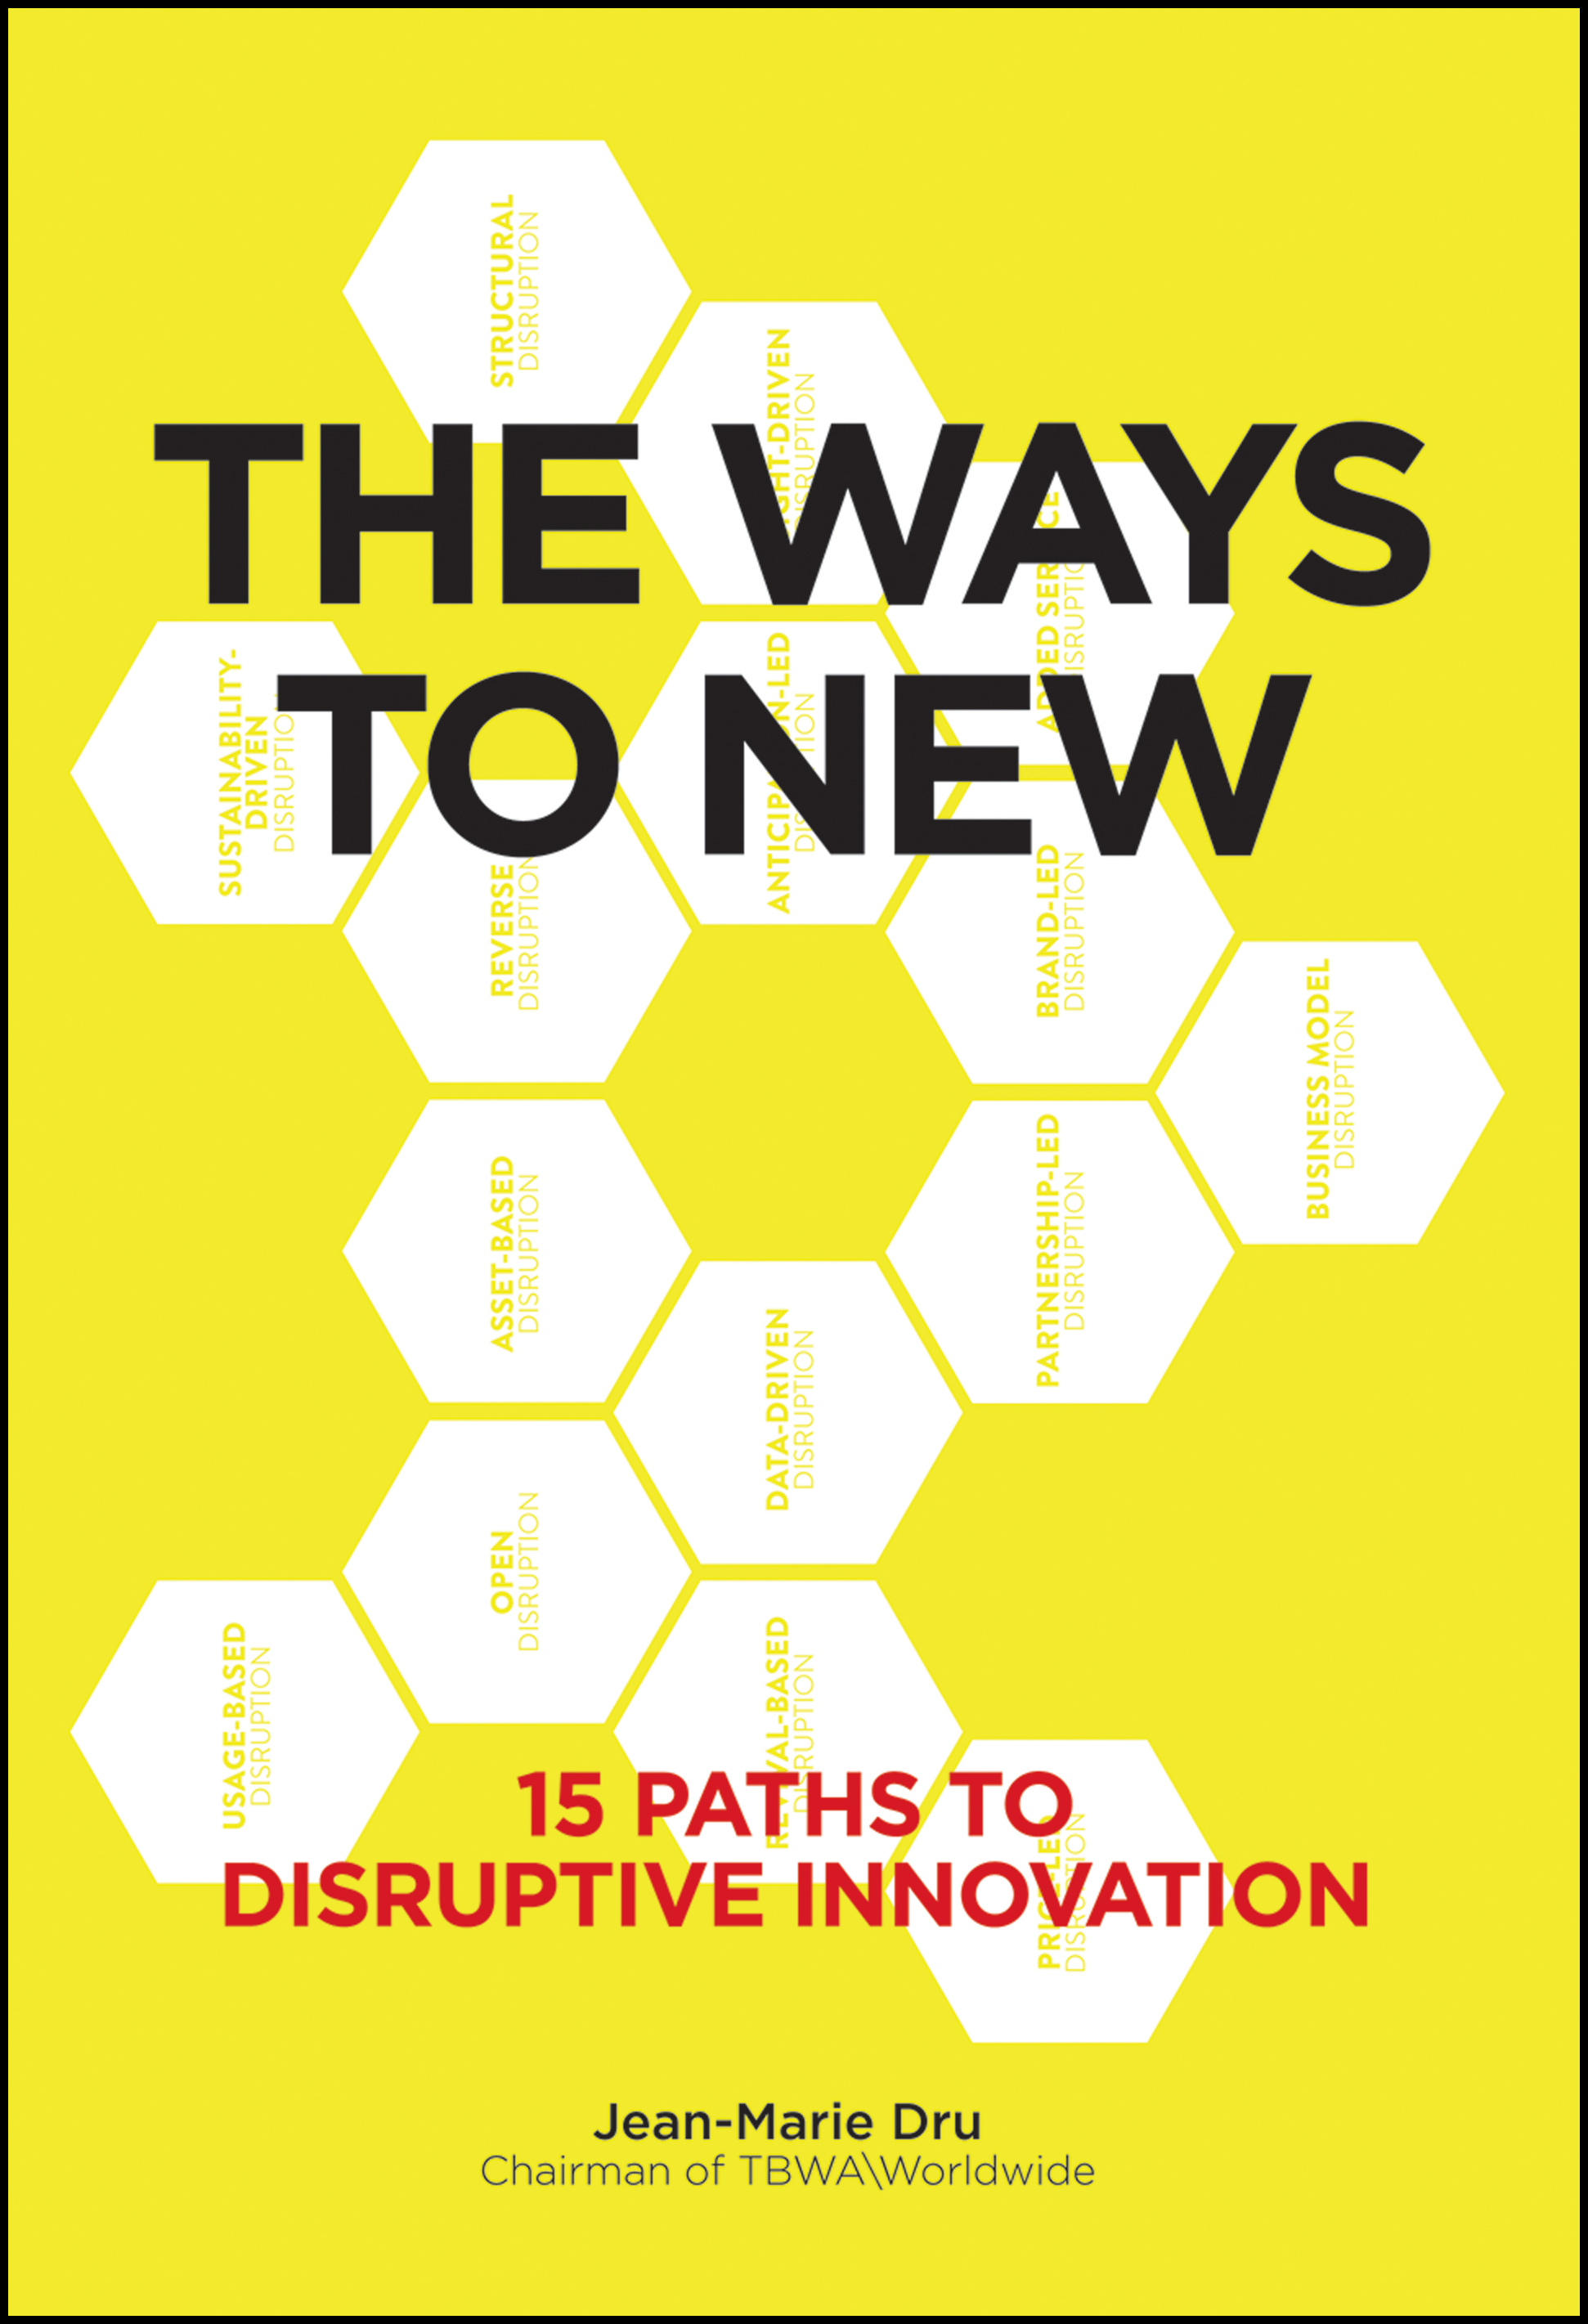 Jean-Marie Dru: The Ways To New